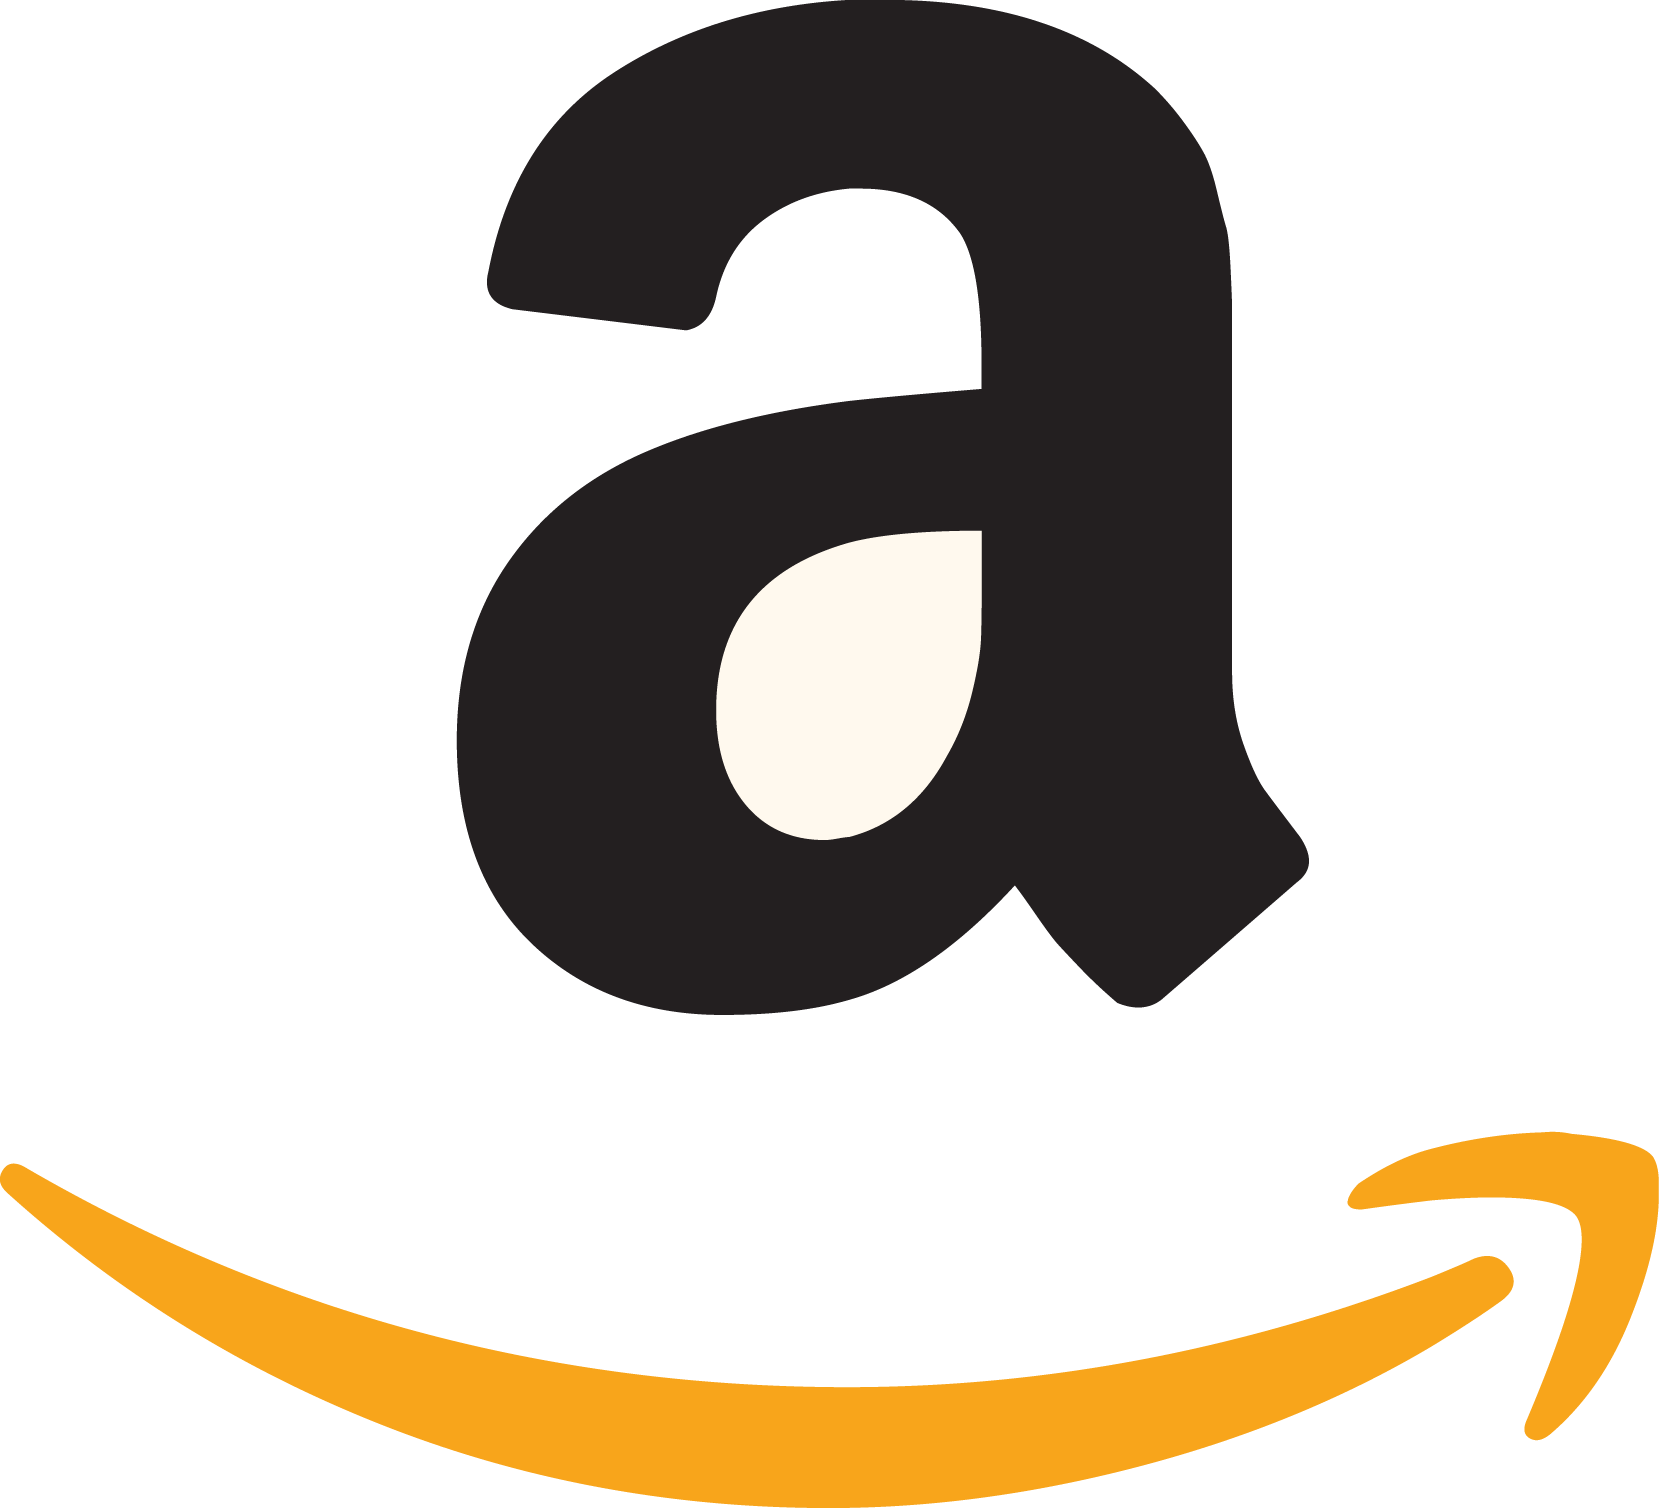 amazon logo vector png transparent amazon logo vector png images rh pluspng com amazon logo png image amazon logo png transparent